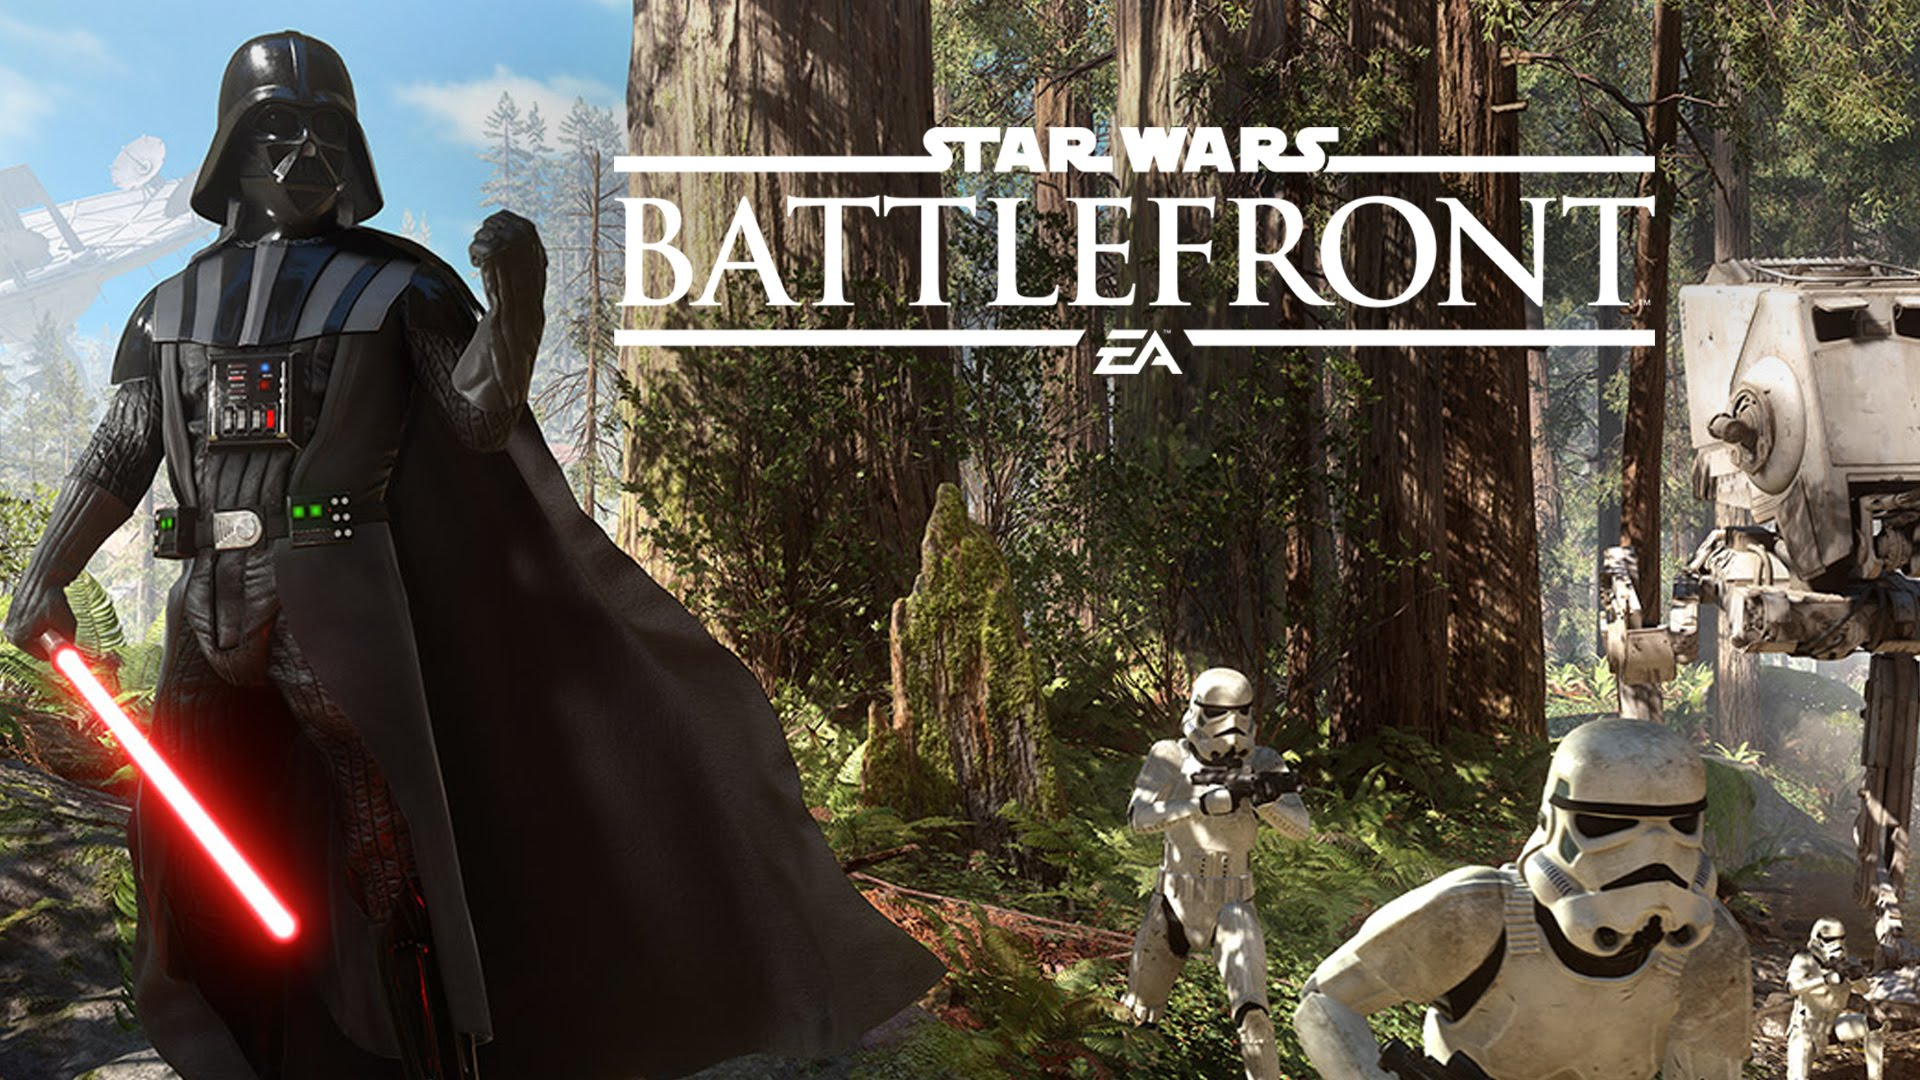 Star Wars Battlefront 3 Wallpapers: Star Wars Battlefront Wallpapers, Pictures, Images